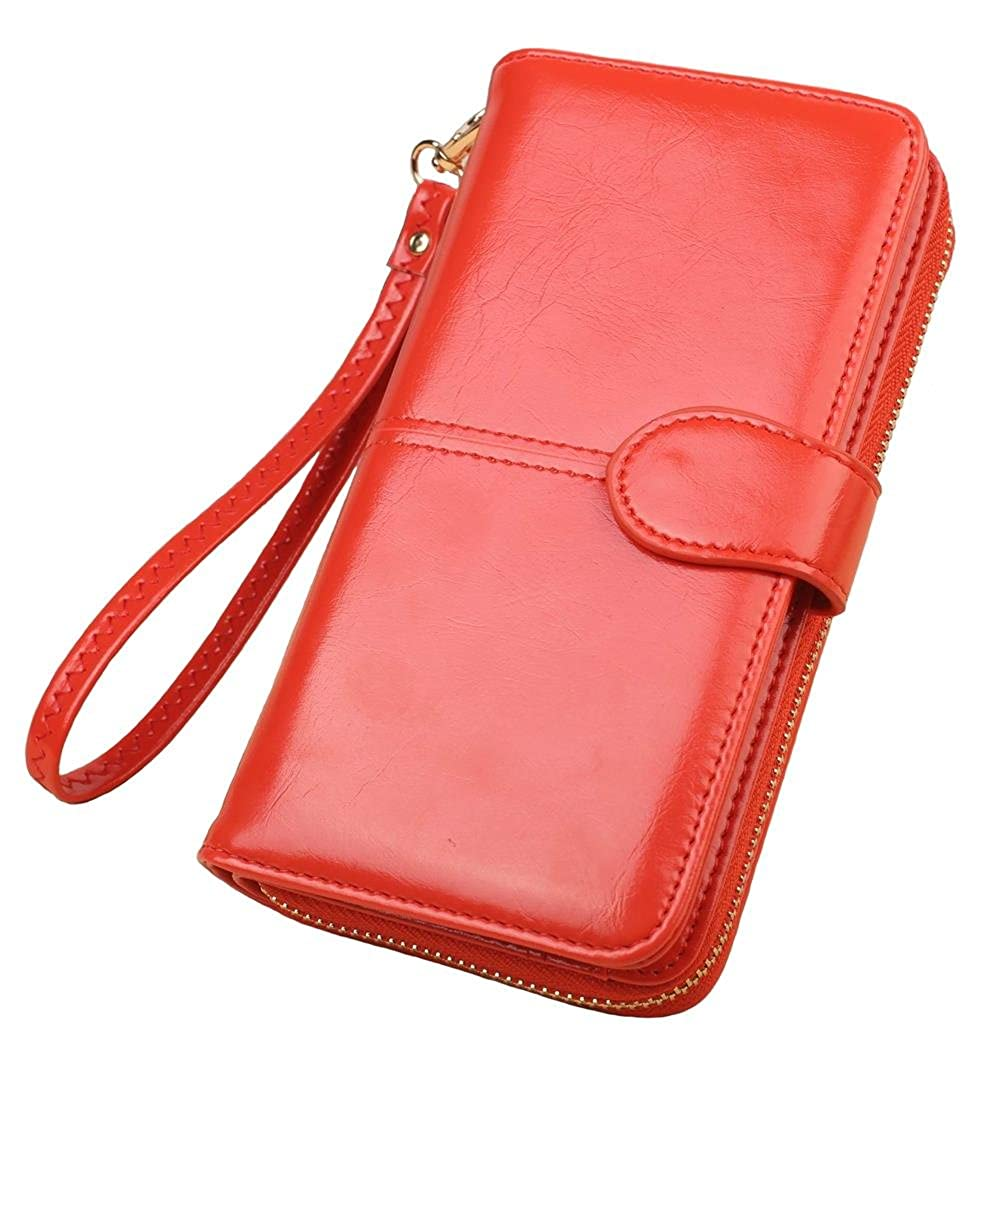 differently 9252a badab Large Capacity Wallet,Multi Card Wallet,Cell Phone Wallet,Leather Women  Wallet